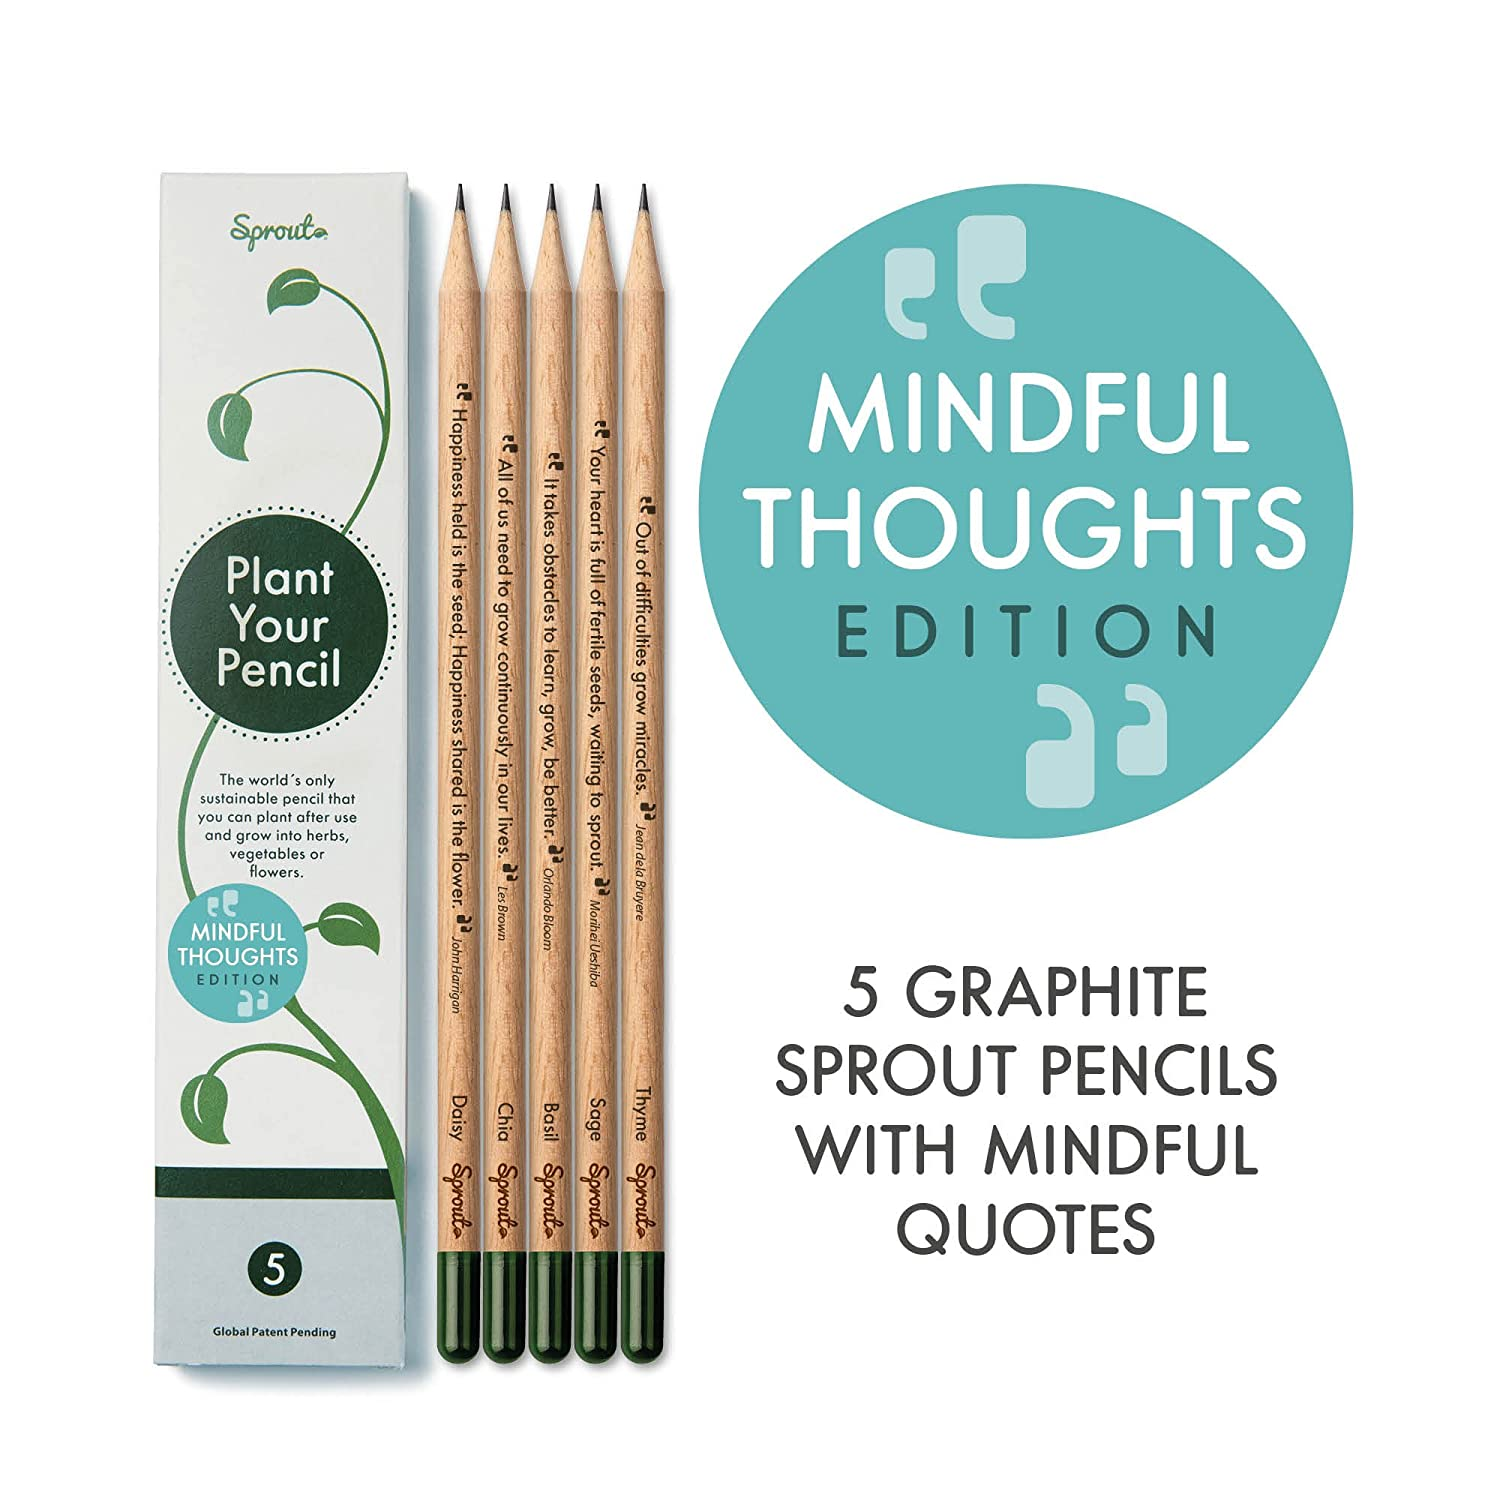 Sprout pencils - with mindful quotes | plantable graphite pencils with seeds in eco friendly wood | 5 Pack |Gift set with herbs and flowers